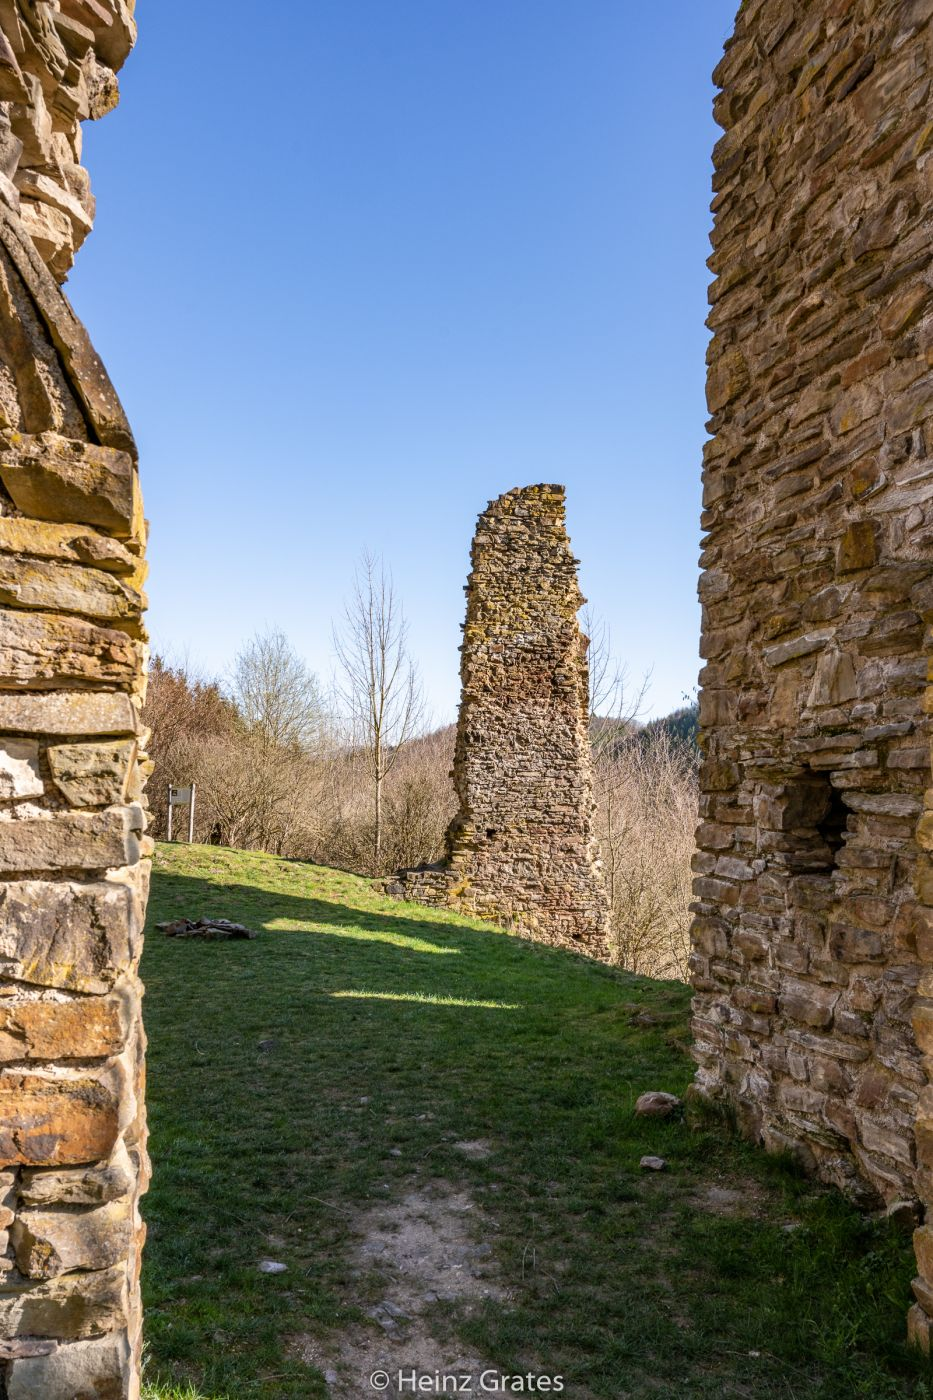 Neublankenheim Castle Ruin, Germany